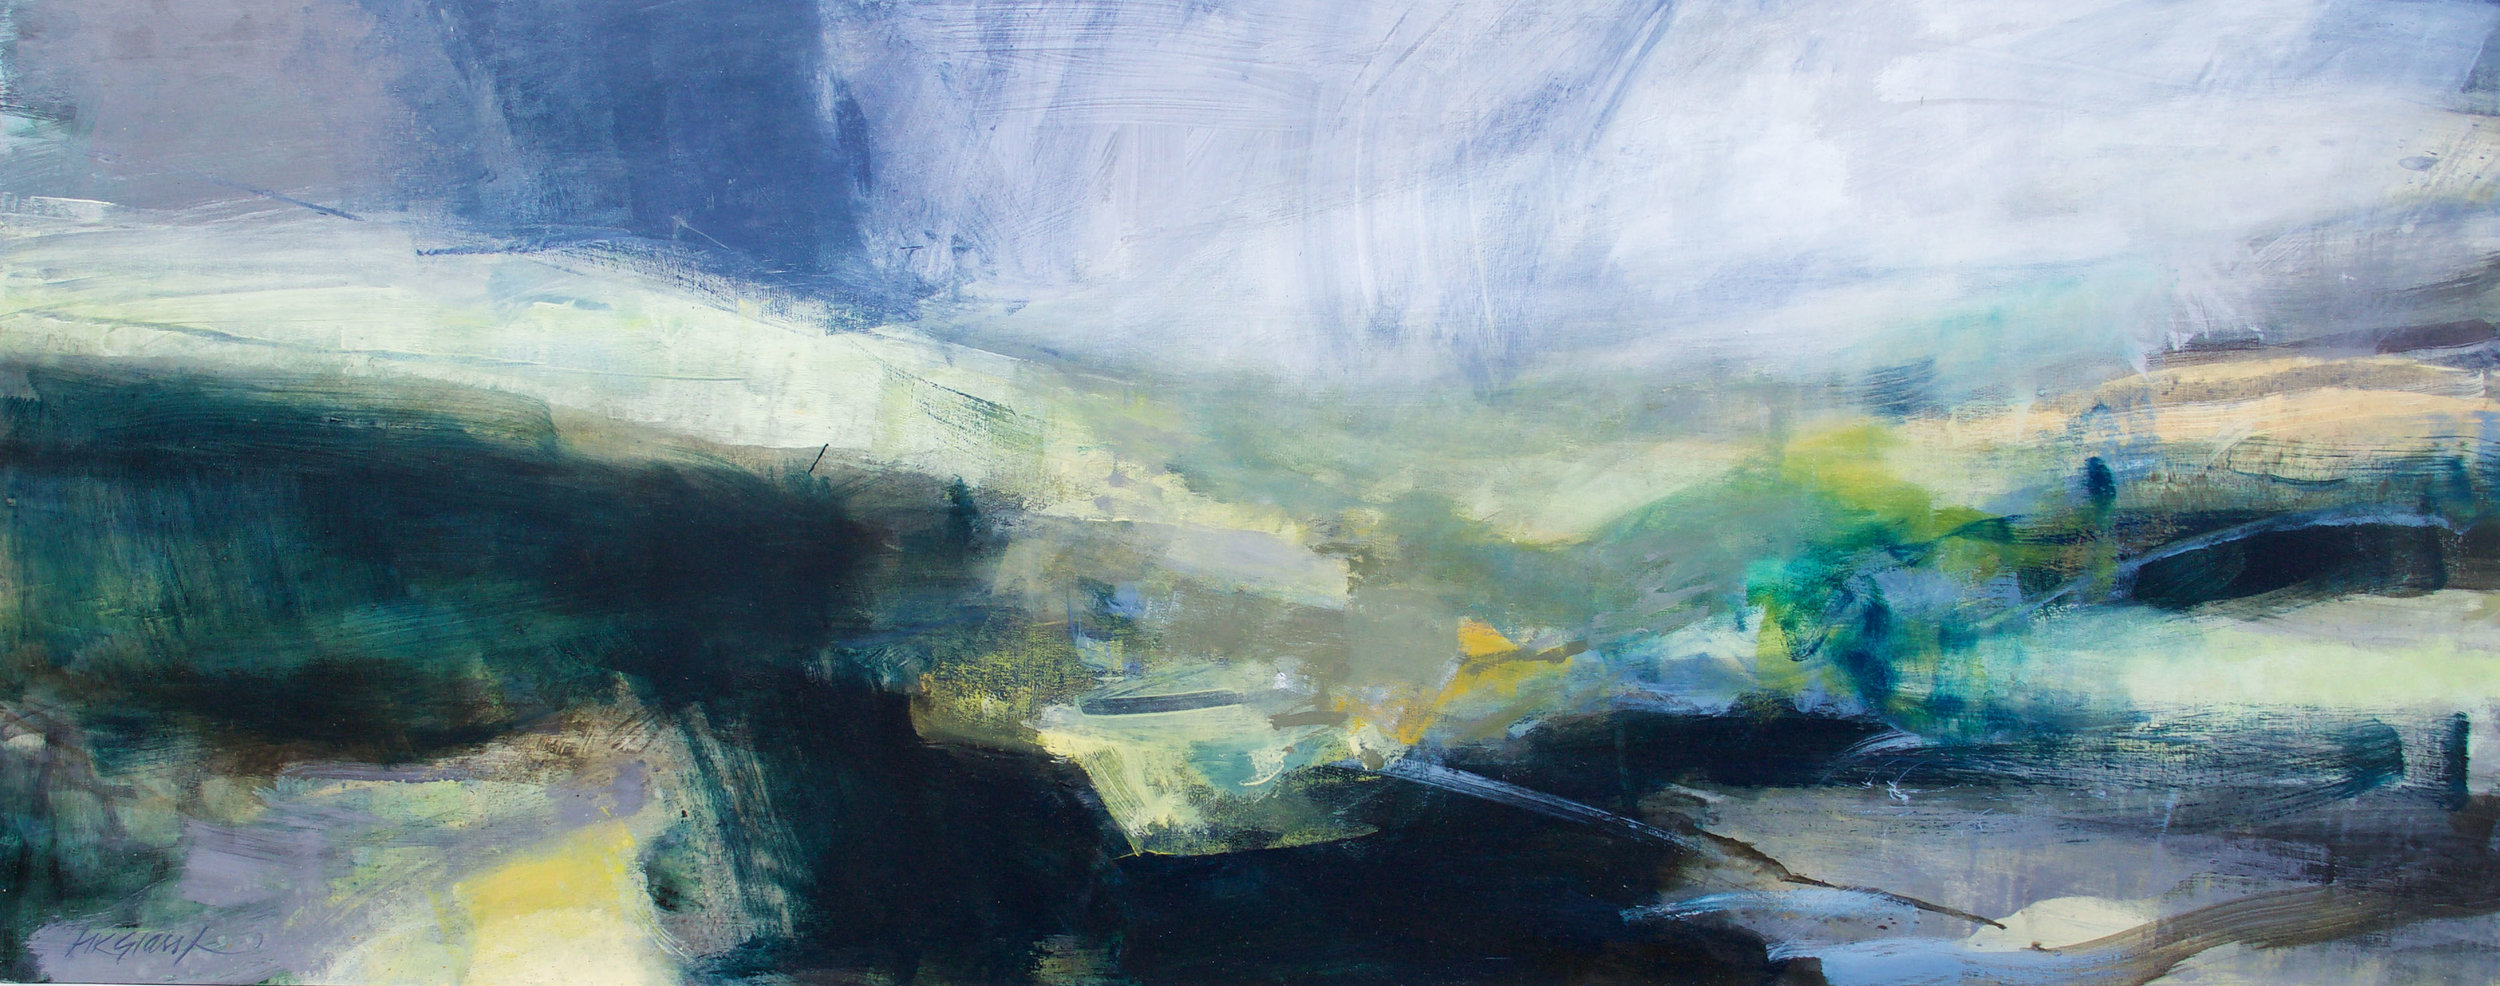 Remember When • Oil on Board • 48x122cm • Sold